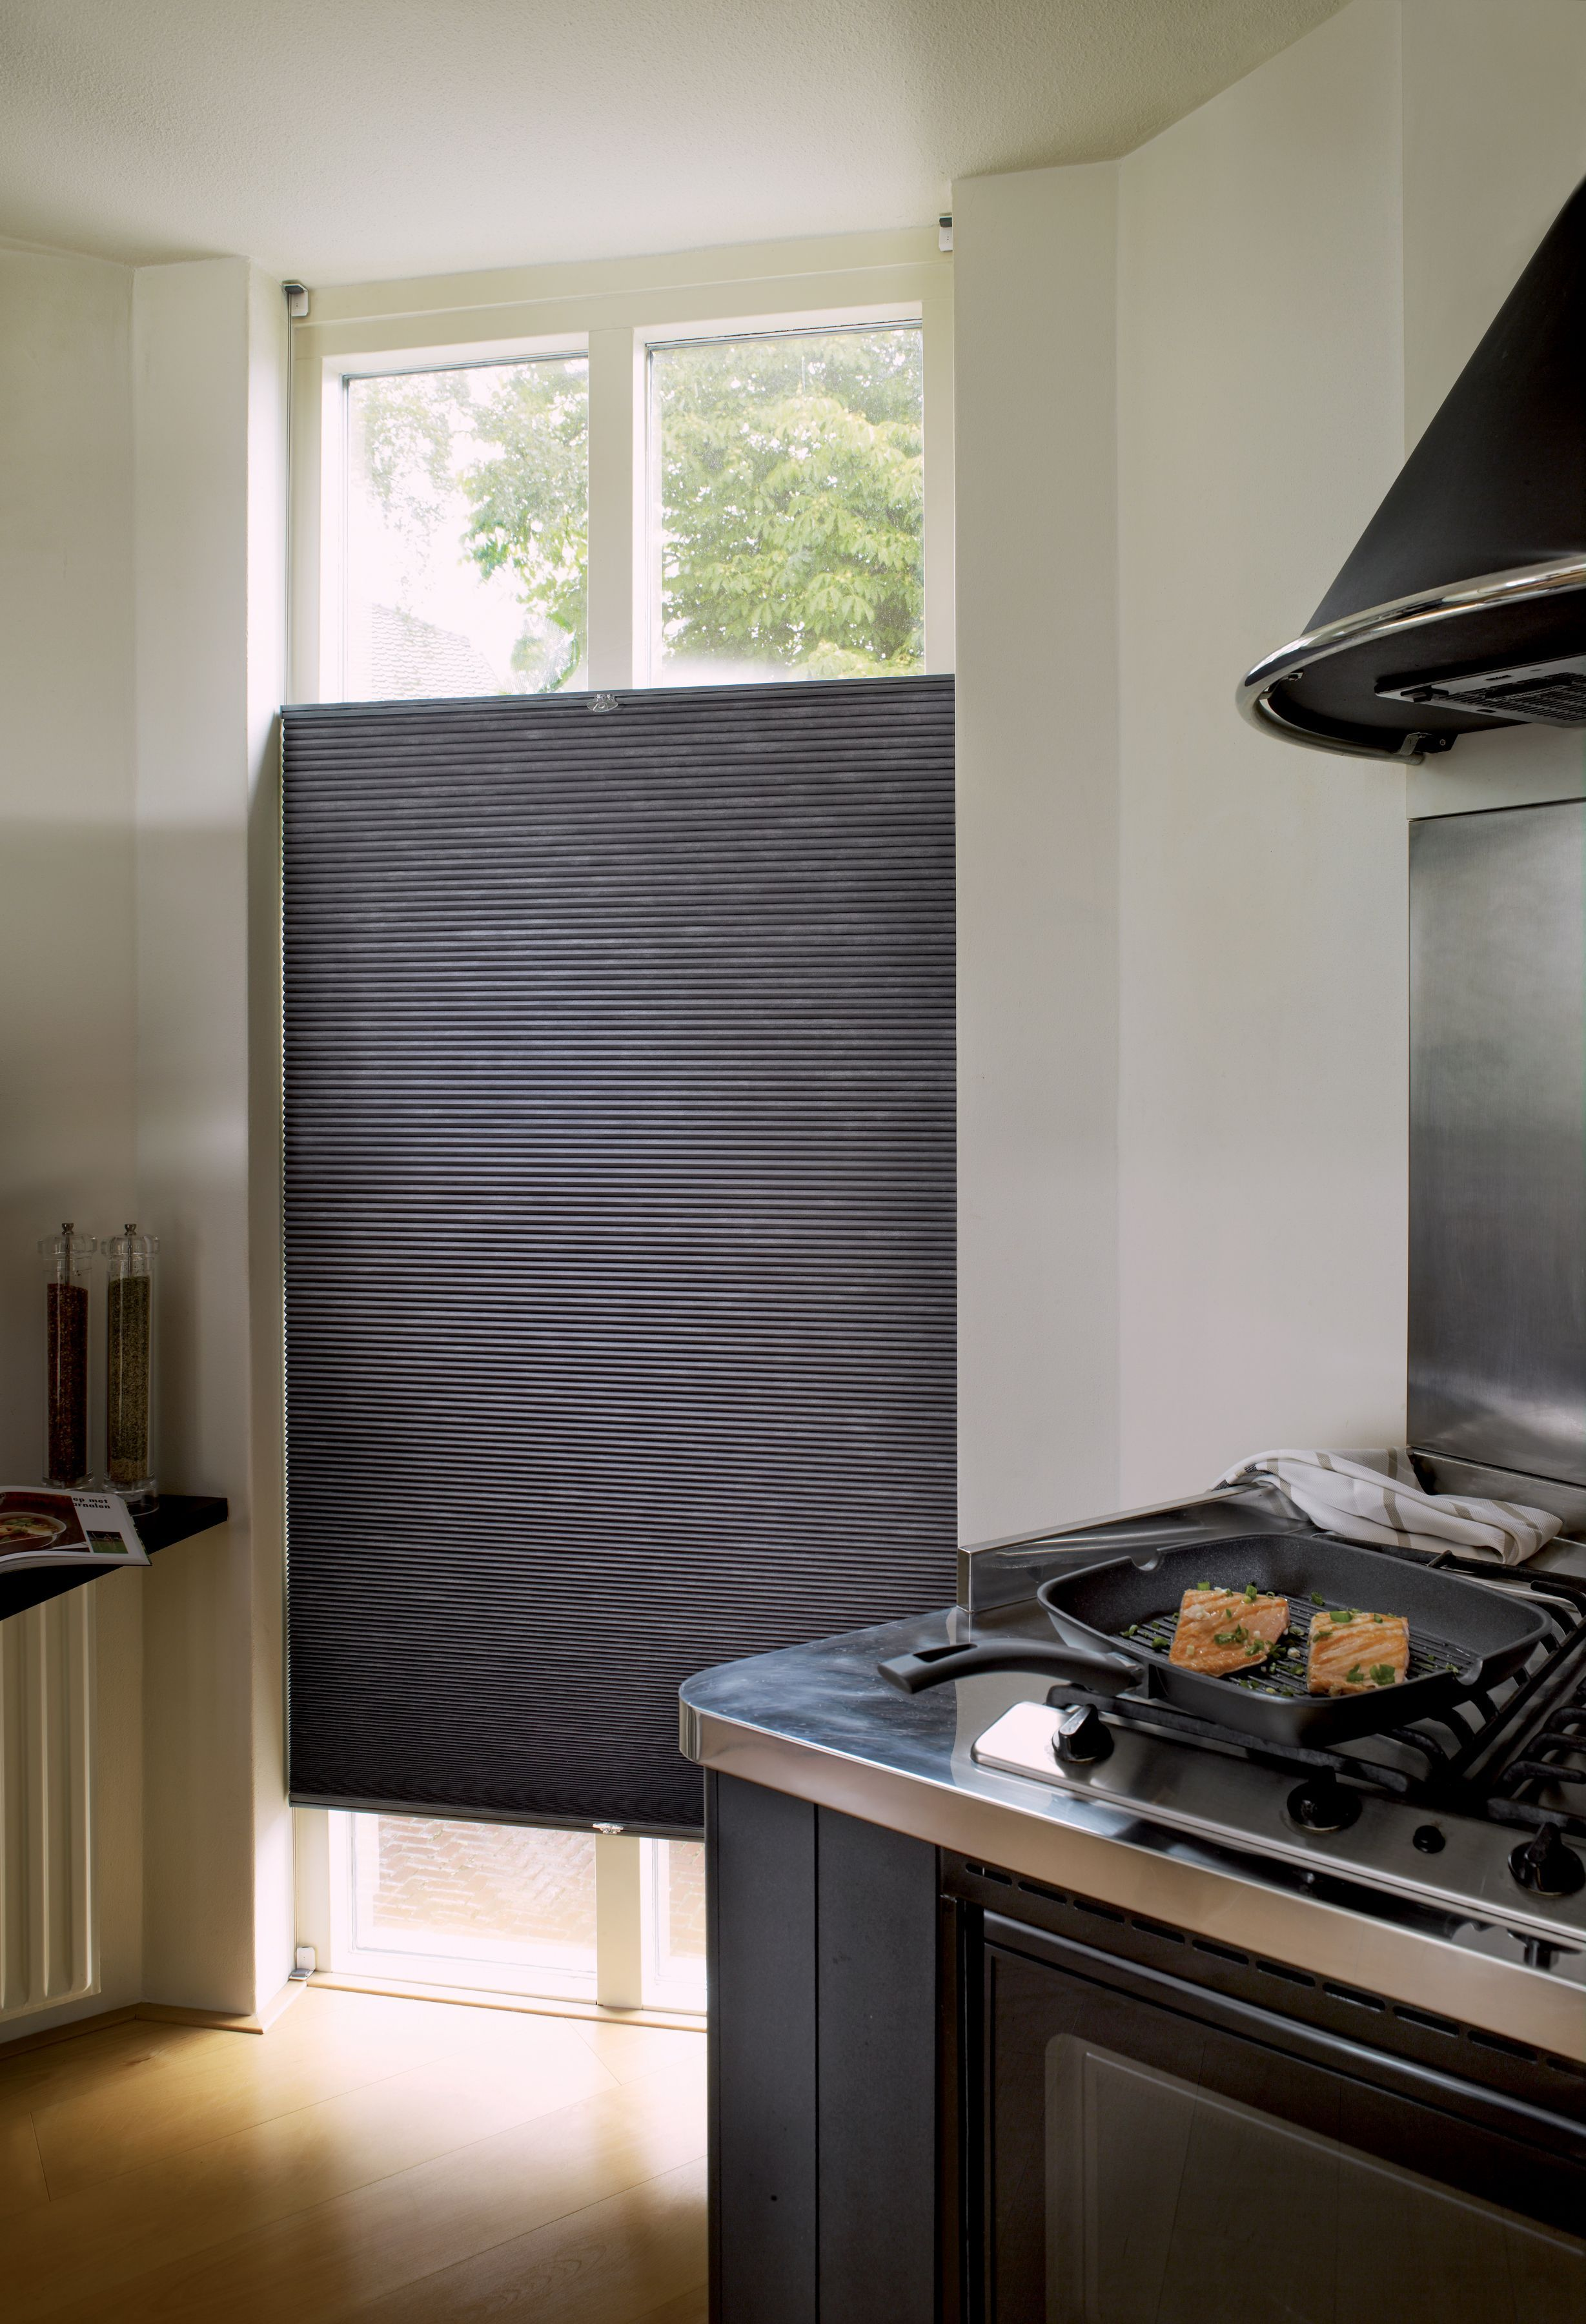 Kitchen window kitchen blinds  duette energy saving blinds for the kitchen kitchen inspiration